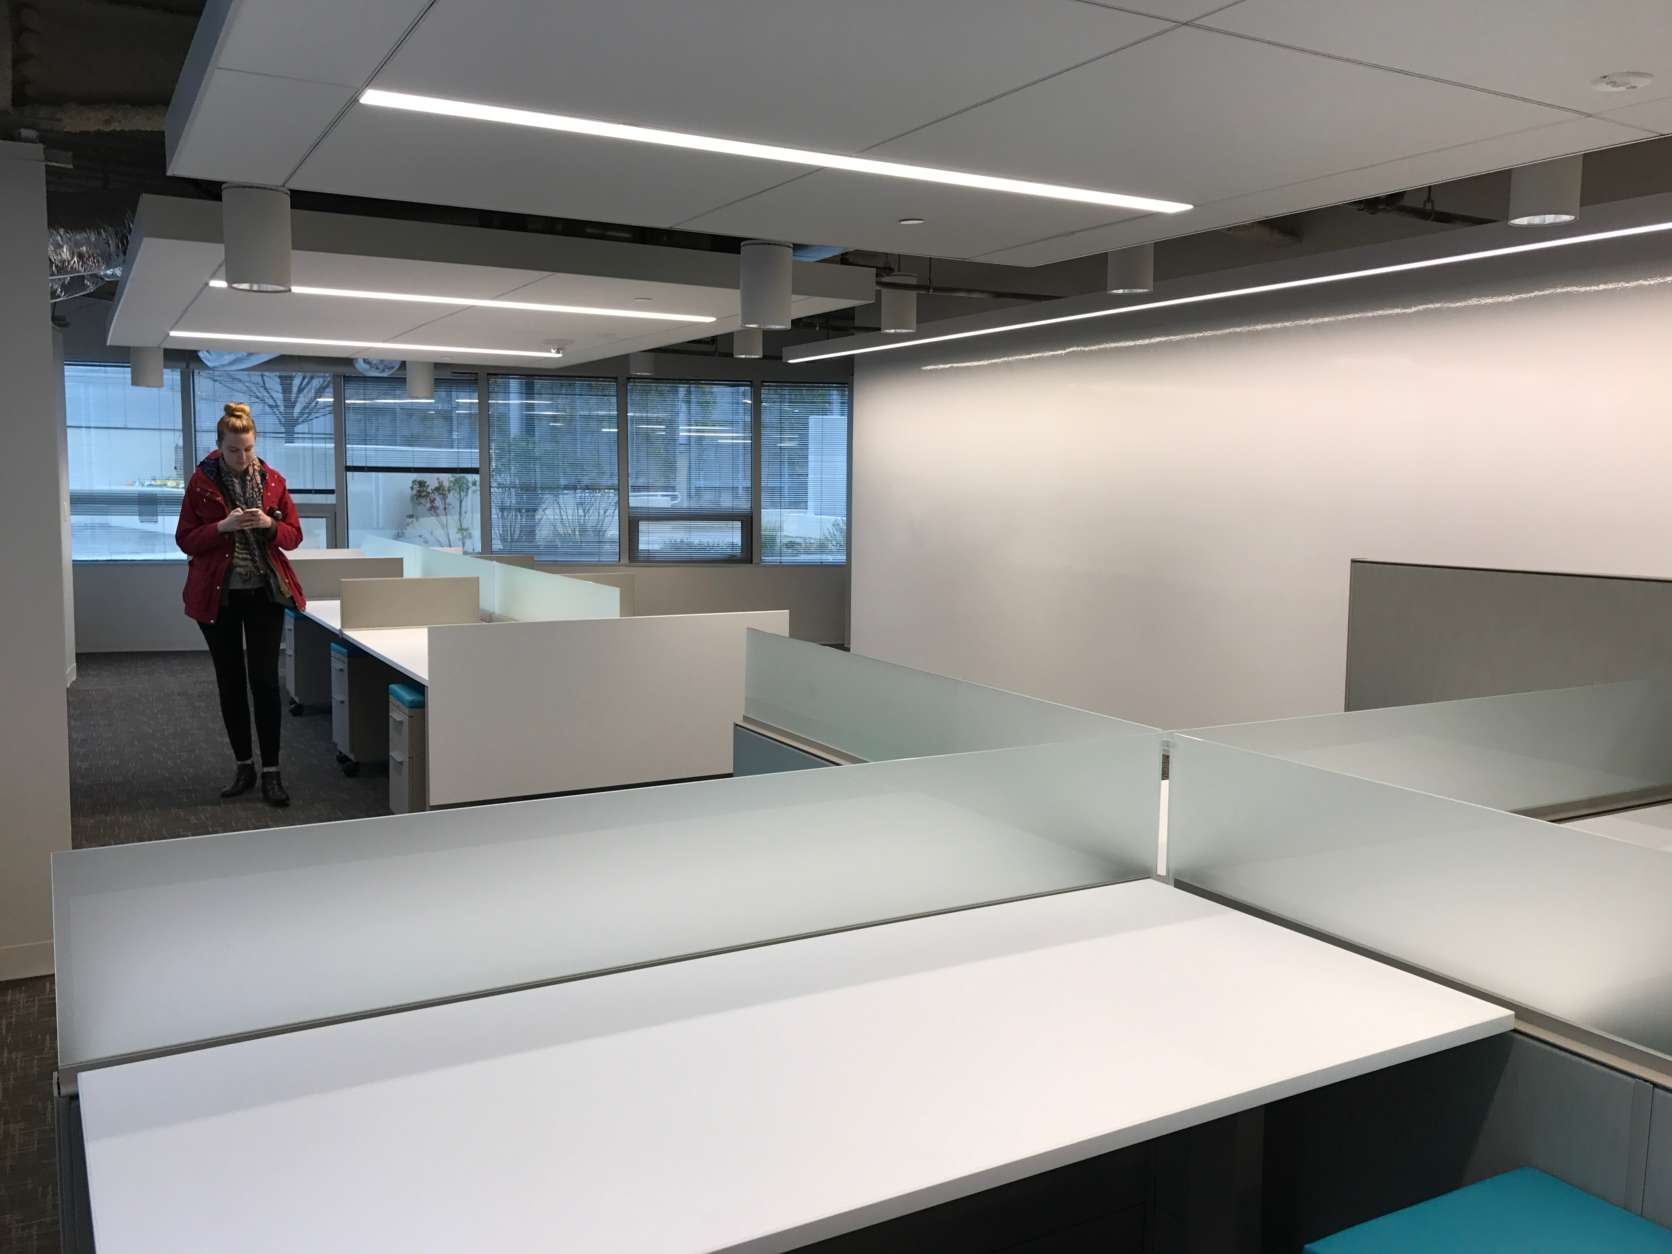 The Washington Business Journal's new office is 8,500 square feet, down from the previous 11,500. (Courtesy Washington Business Journal)